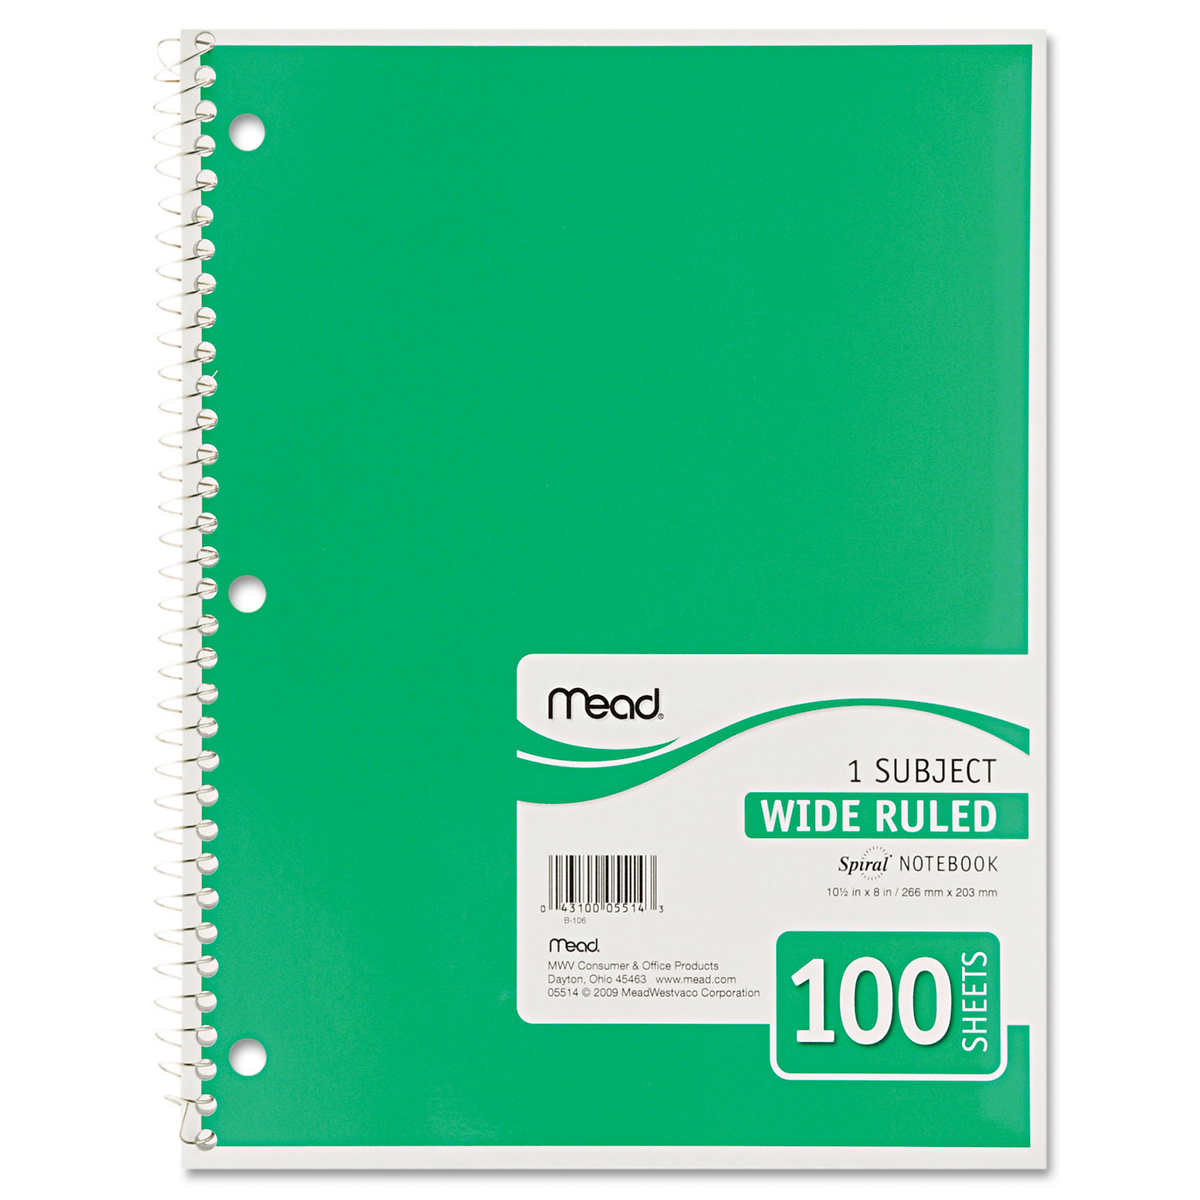 Rediform office products subject wirebound notebook wide - Member Only Item